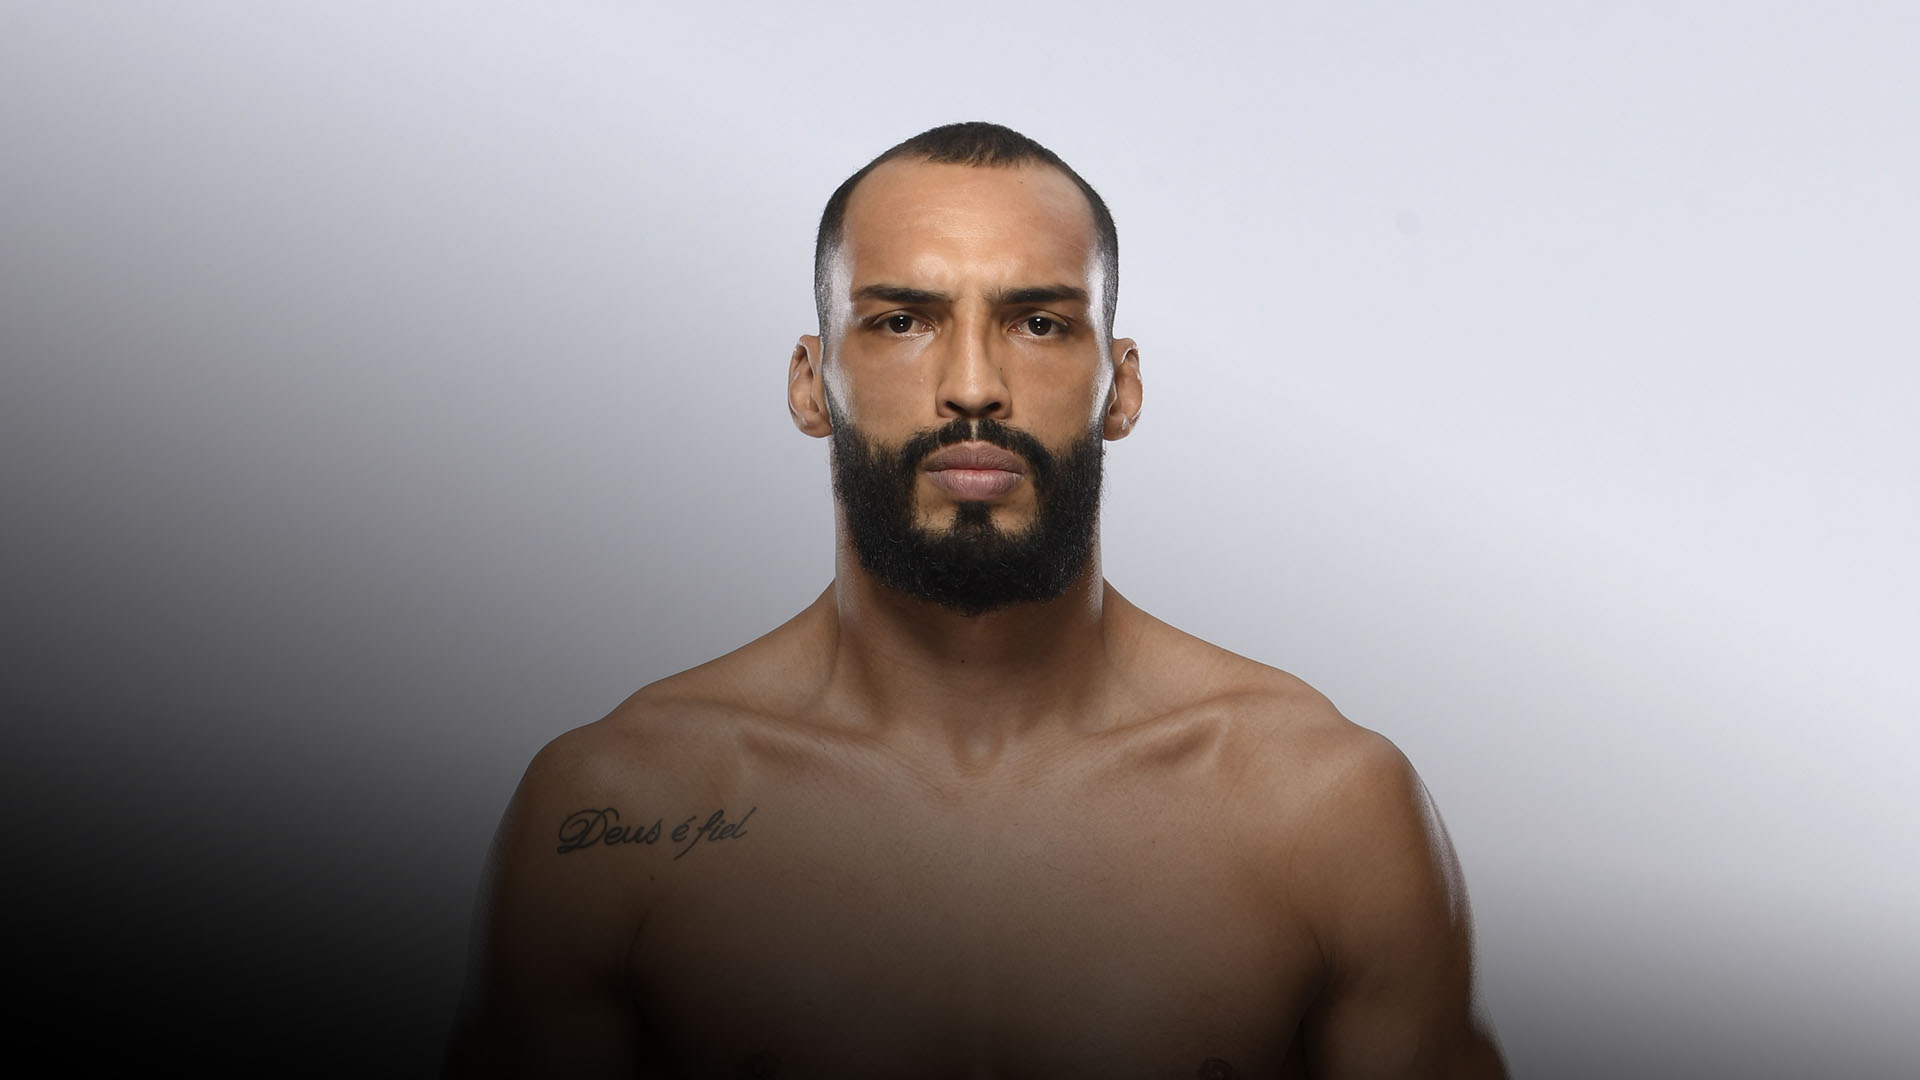 Bruno Silva poses for a portrait during a UFC photo session on June 16, 2021 in Las Vegas, Nevada. (Photo by Mike Roach/Zuffa LLC via Getty Images)